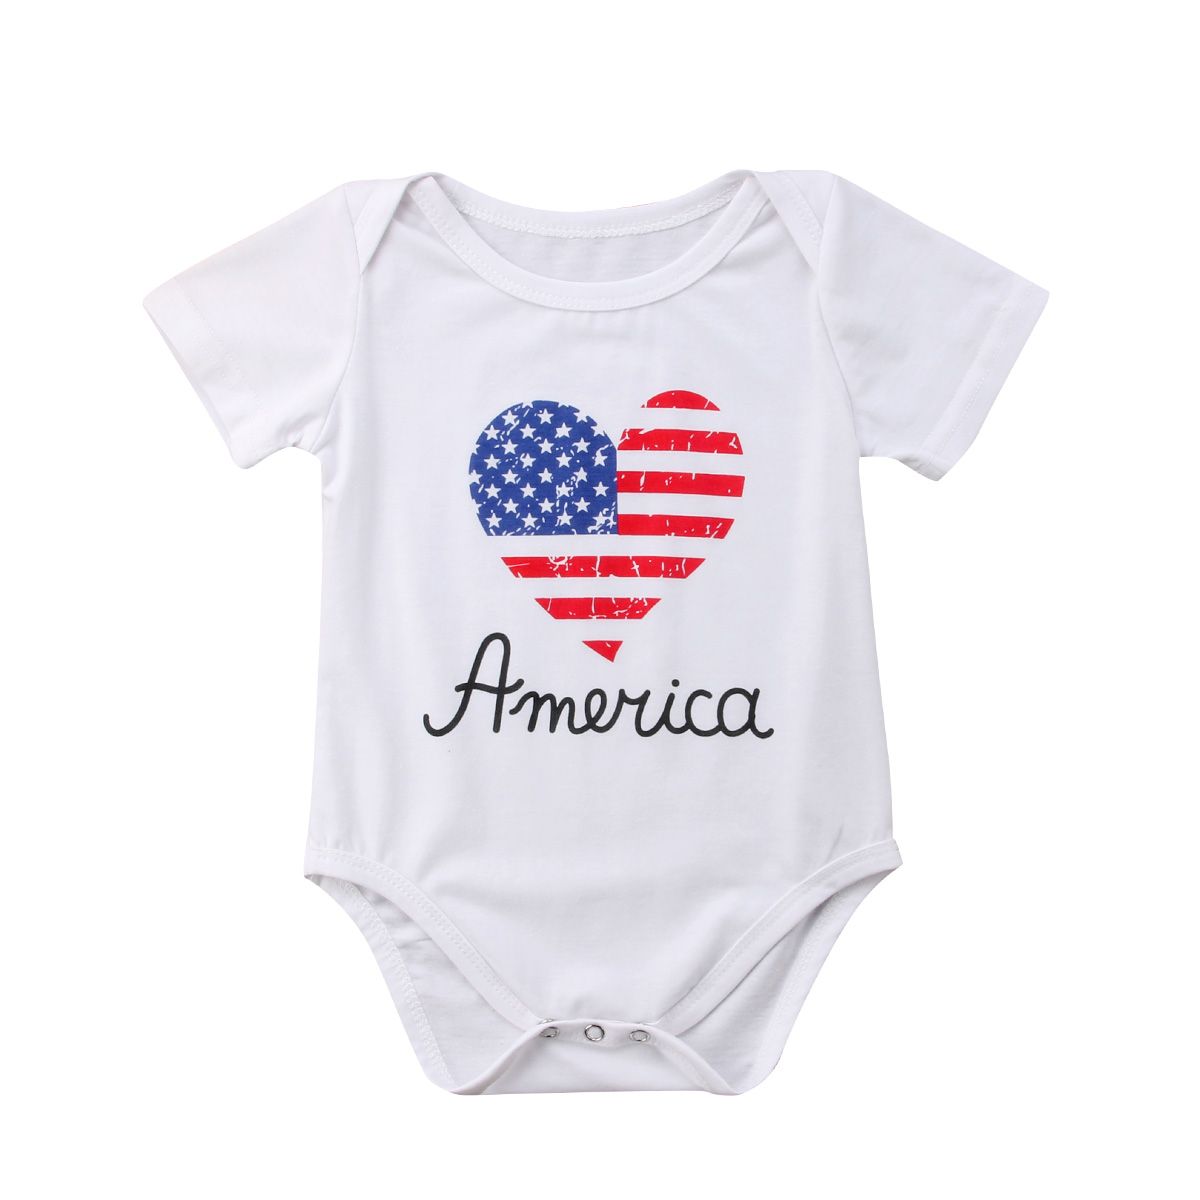 4267c0f9fb0 Newborn Infant Baby Boy Girl Kids Romper Jumpsuit Cotton Clothes Outfit-in  Rompers from Mother   Kids on Aliexpress.com